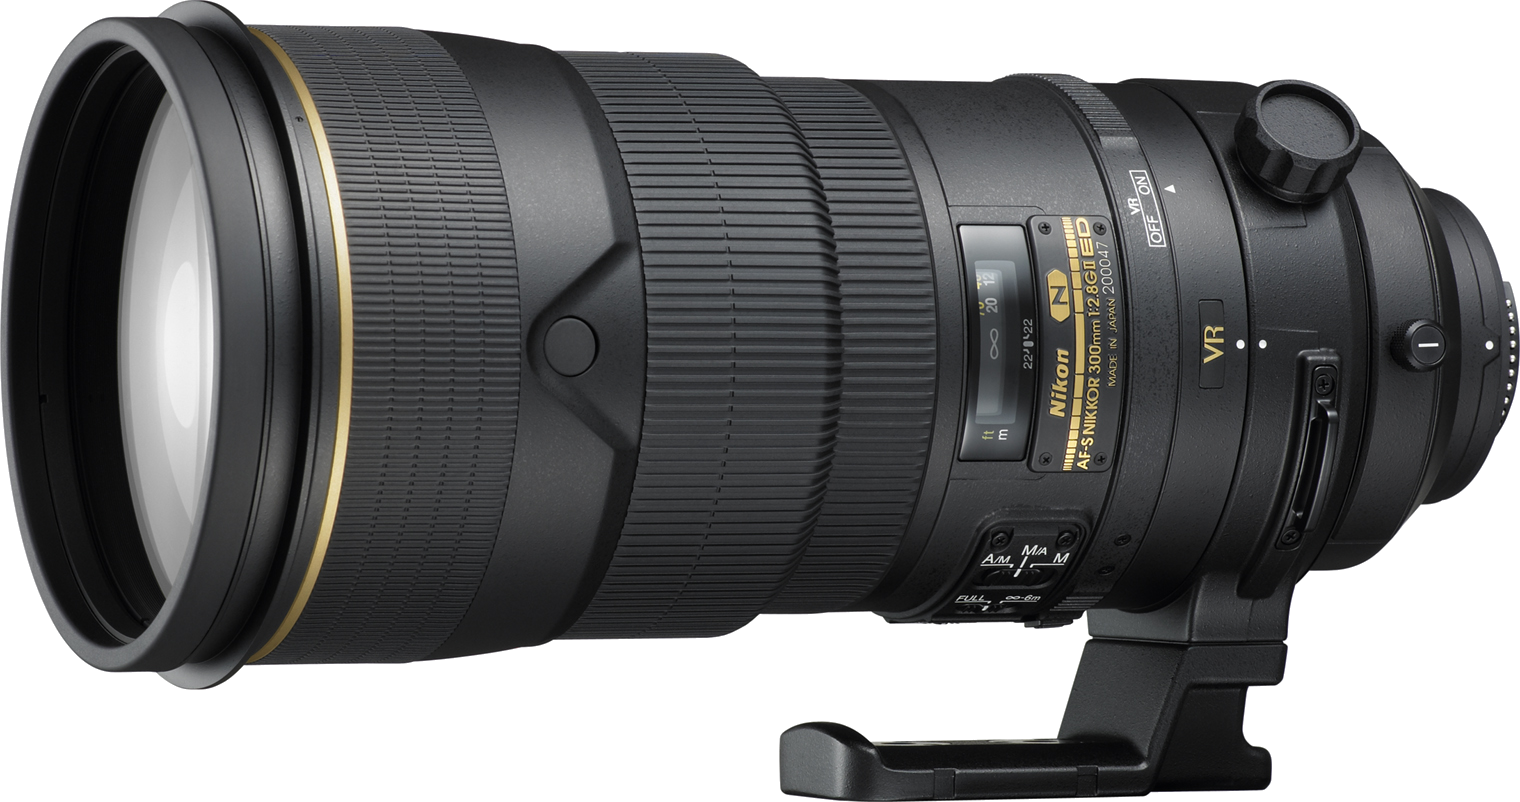 One of the best lenses for sports and wildlife photography.